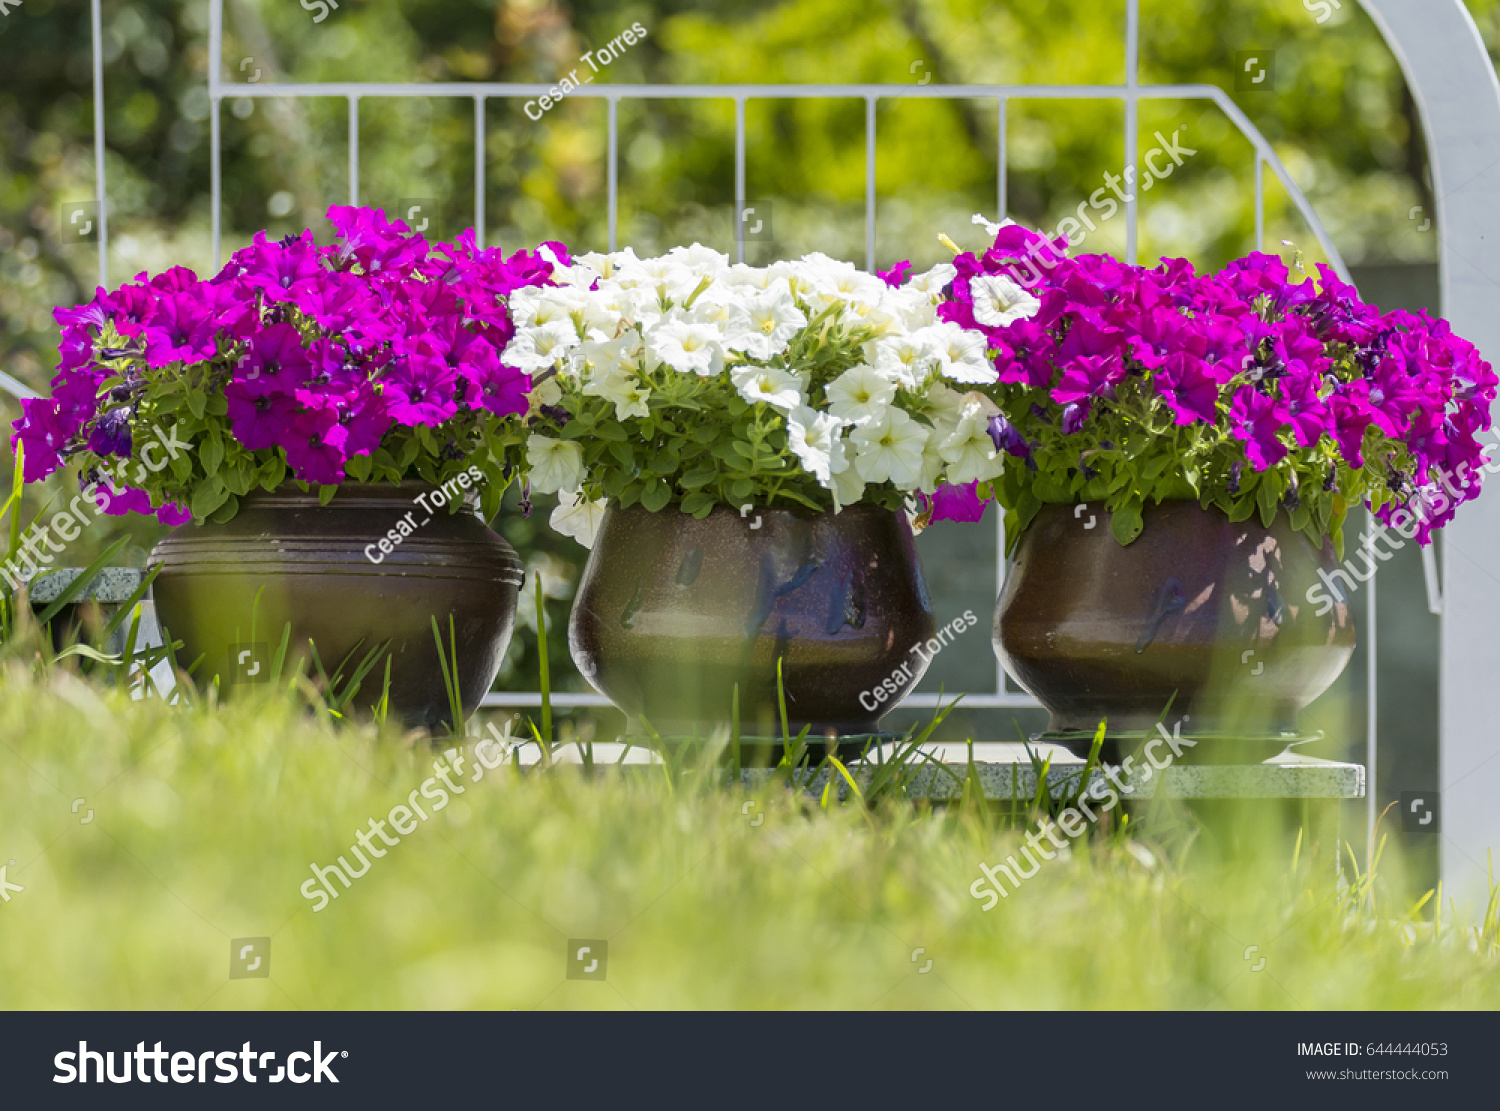 Violet White Flowers Planted Pots Stock Photo Royalty Free